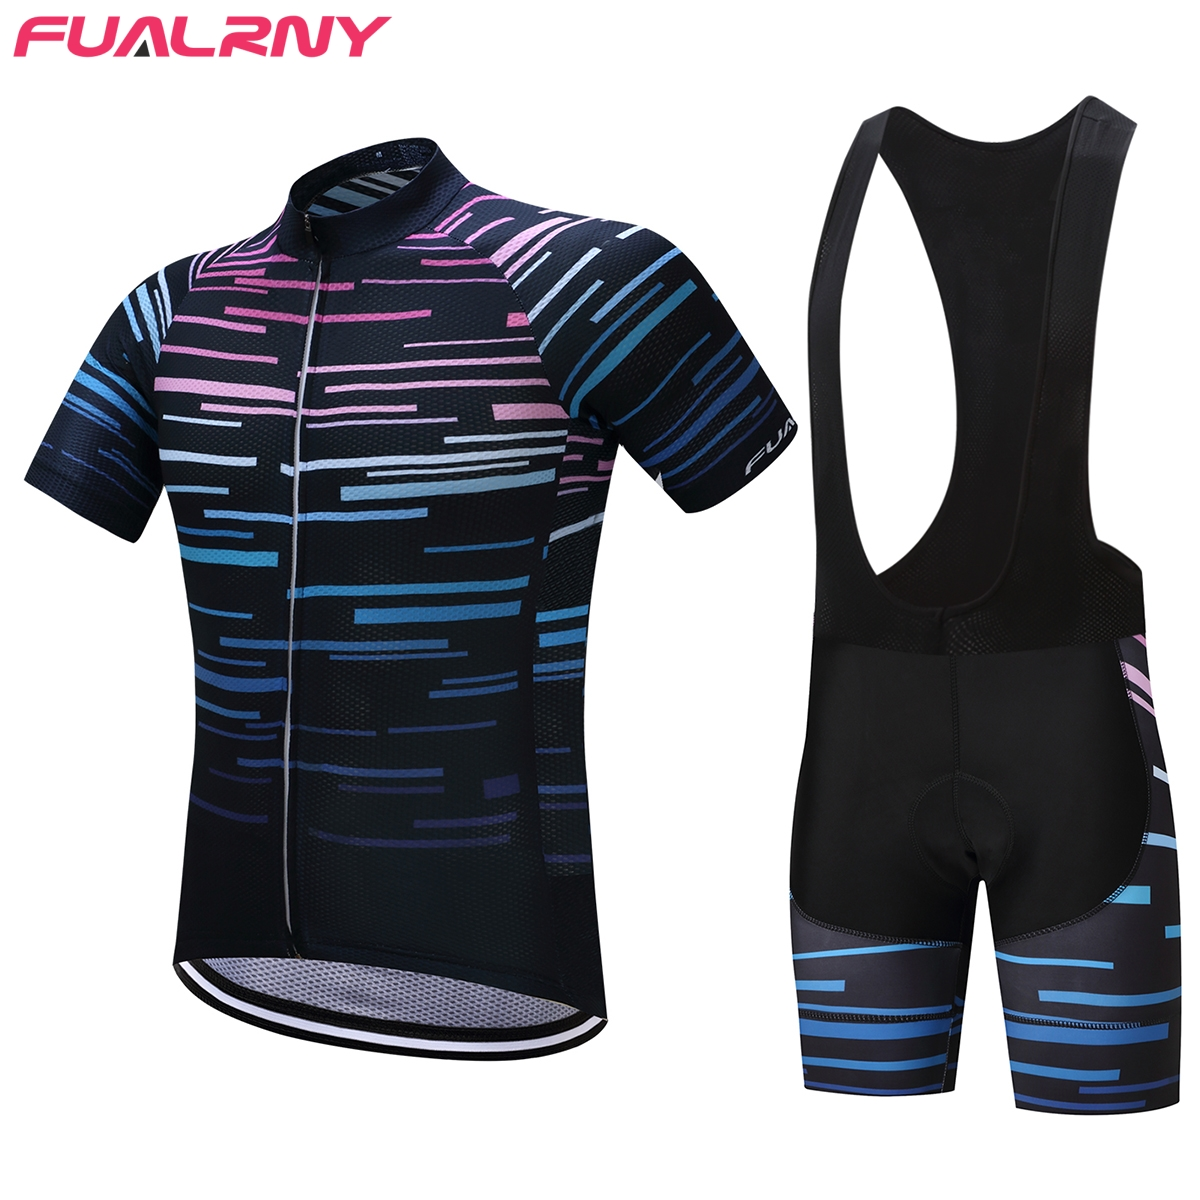 FUALRNY 2017 Pro Summer Cycling Jerseys set Breathable MTB Bike Clothing Road Bicycle Sportswear Maillot Ropa Ciclismo For Man32 cycling clothing rushed mtb mavic 2017 bike jerseys men for graffiti cycling polyester breathable bicycle new multicolor s 6xl